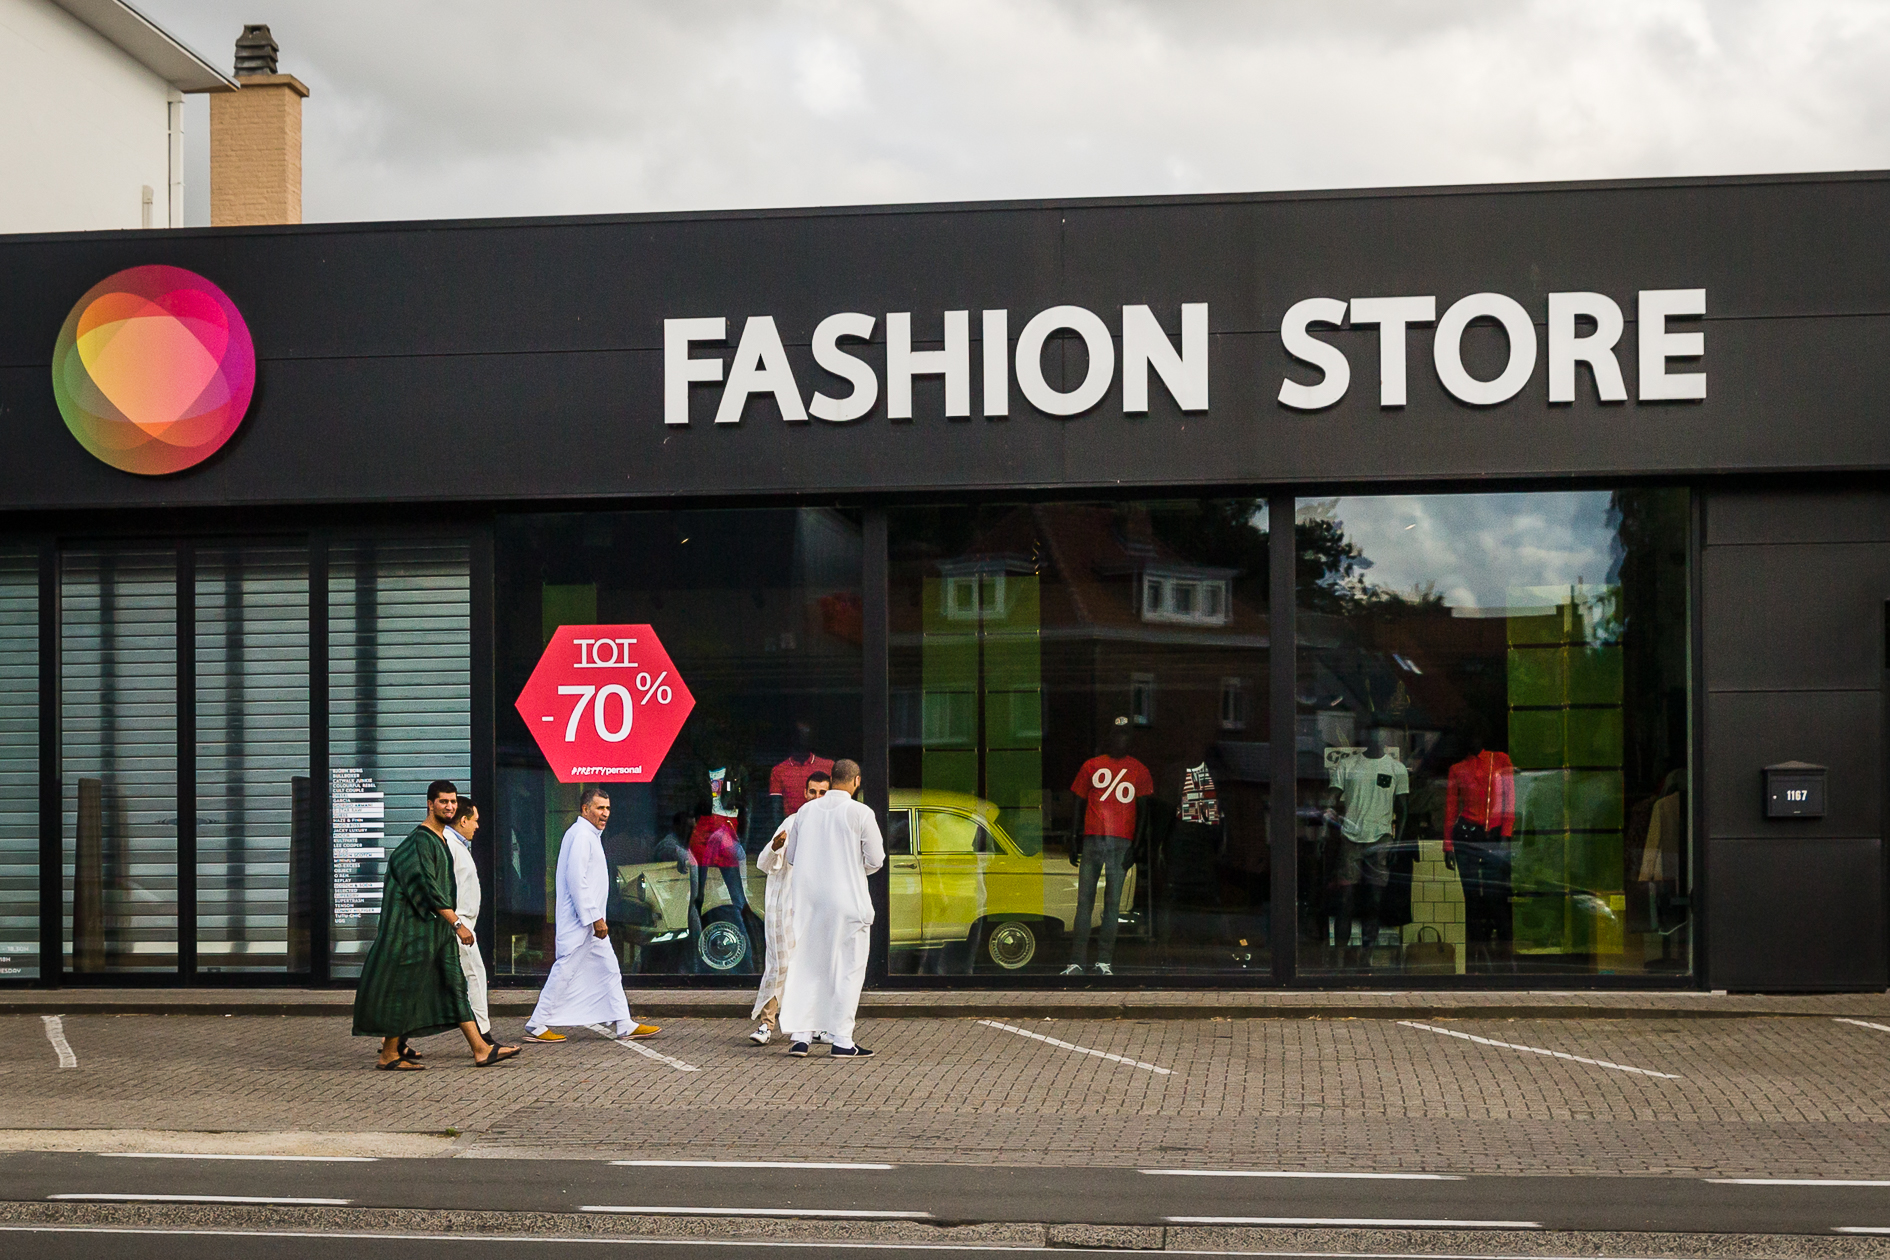 Muslim men dressed in traditional clothing go shopping for sales at a fashion store in Gent.